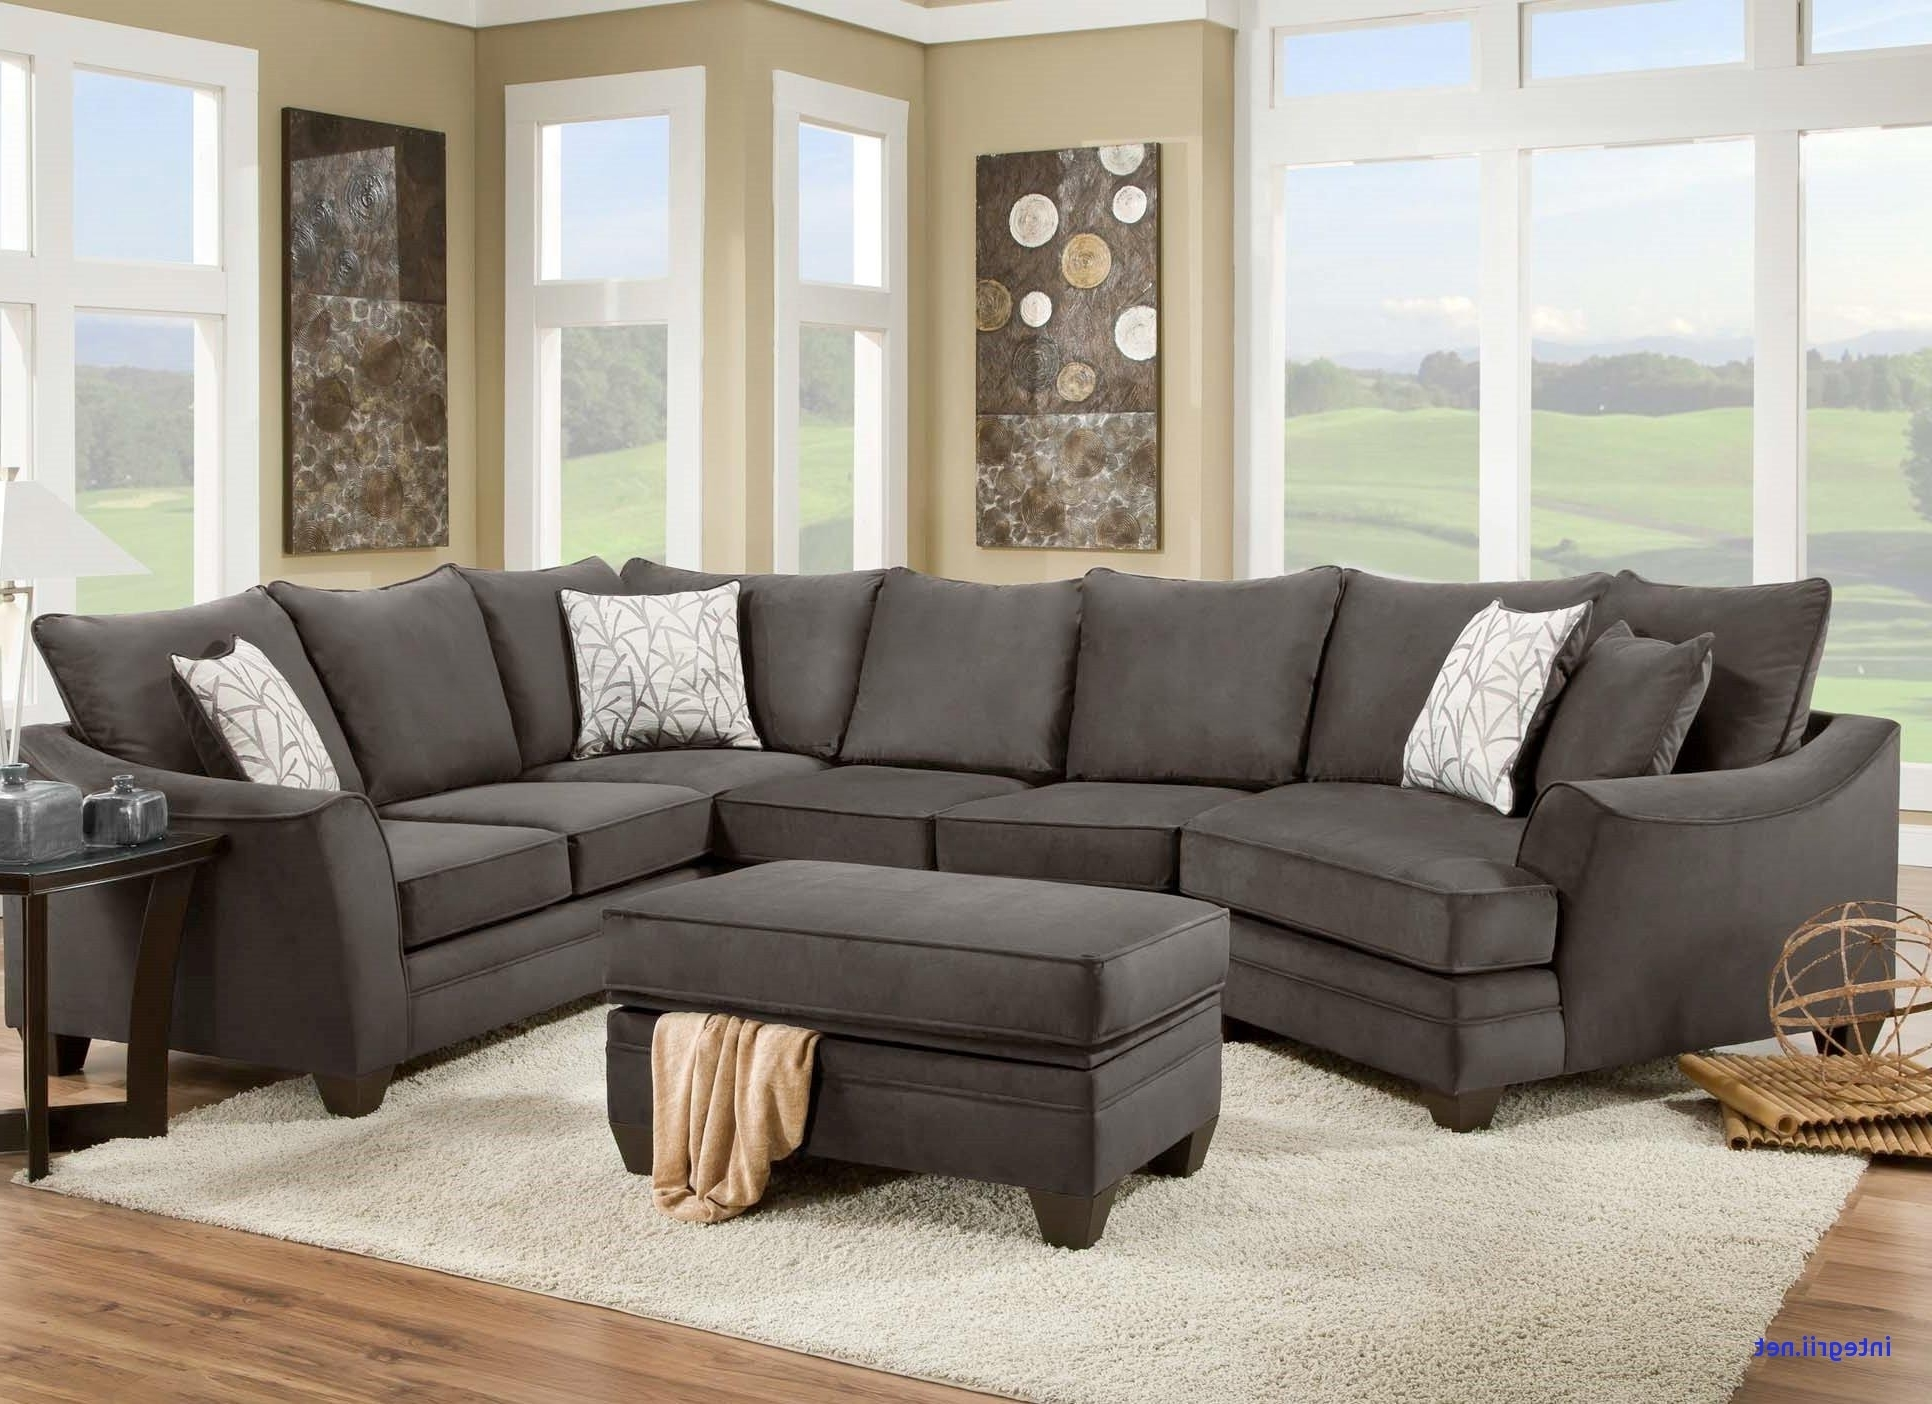 Famous Sectional Furniture Beautiful Affordable Furniture 3650 Sofa Inside Royal Furniture Sectional Sofas (View 6 of 15)